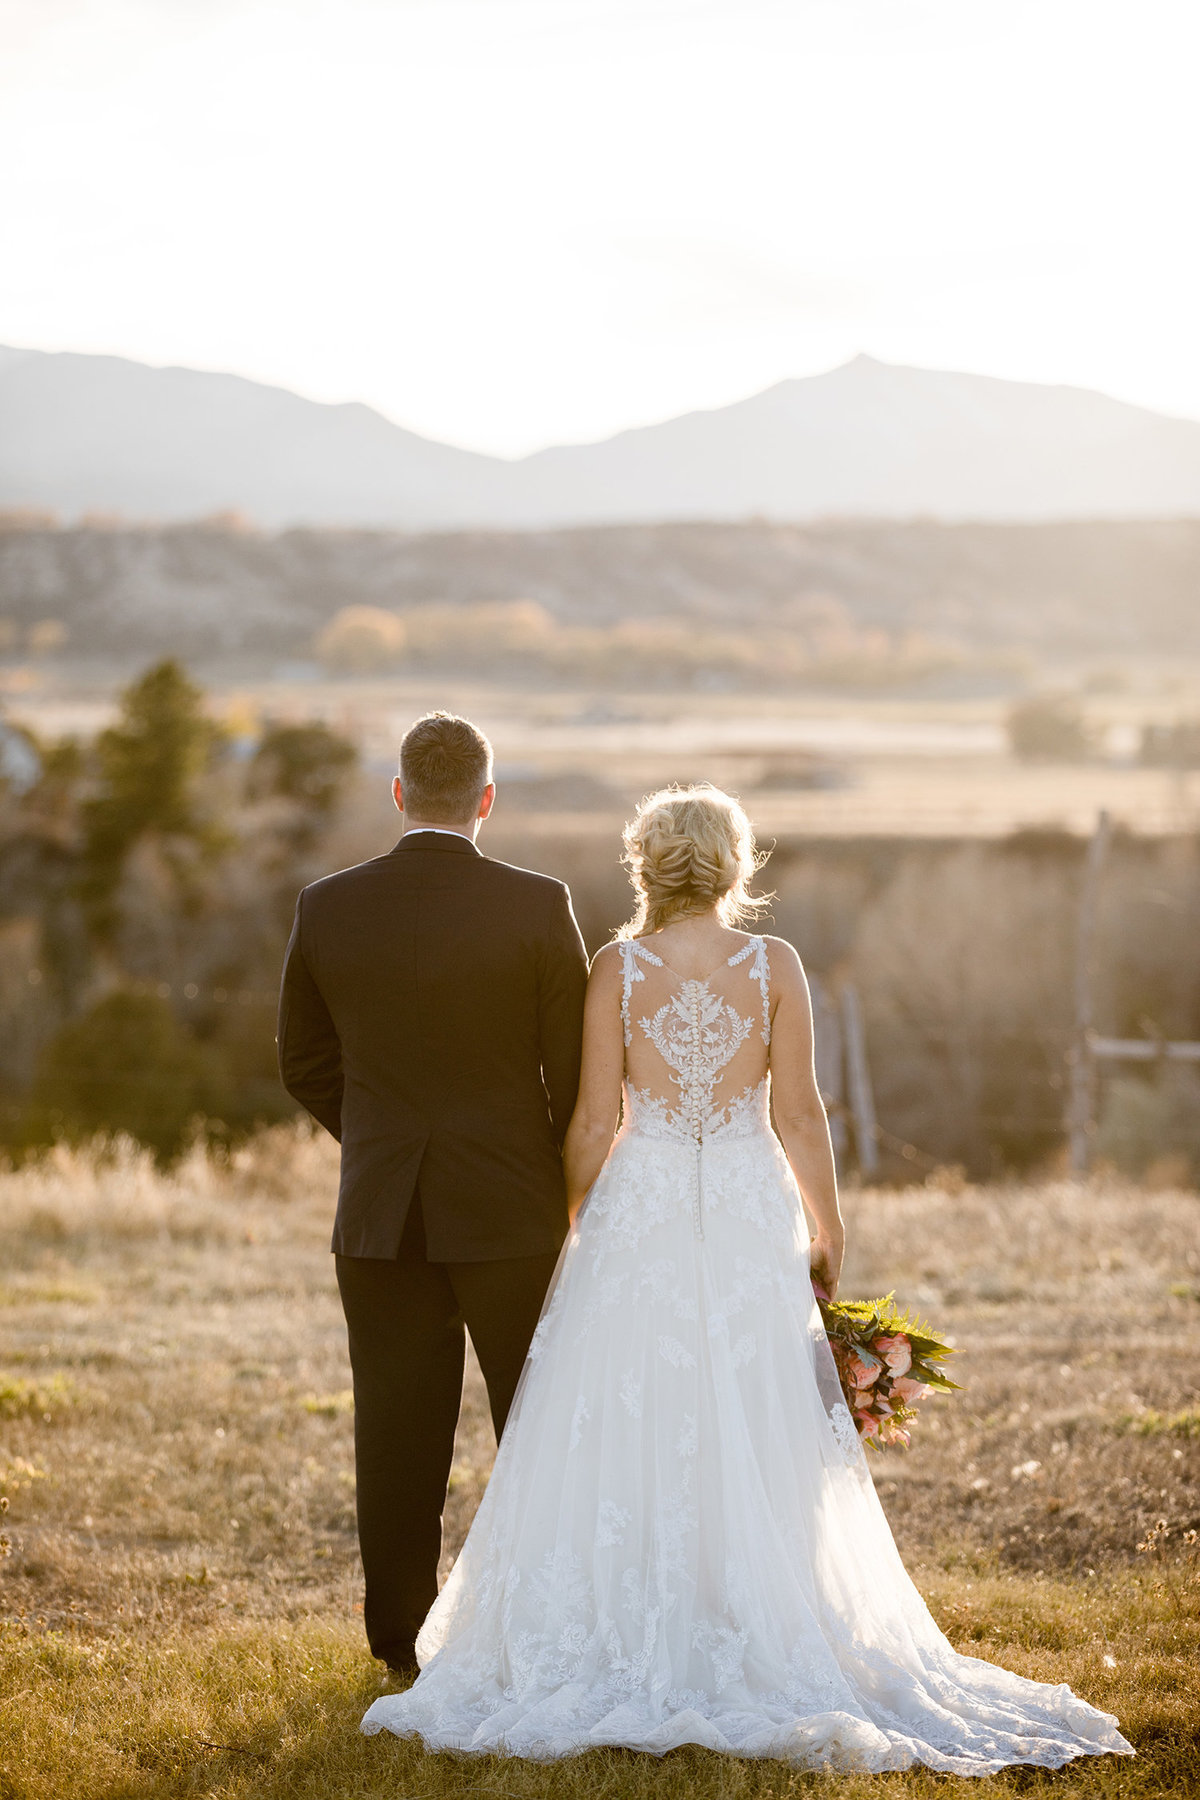 Everett Ranch Rocky Mountain Wedding Outdoor Barn Rustic Salida Colorado Alpaca Collegiate Peaks Vintage Ranch Mount Princeton Yale Harvard Majestic Sunsets 017